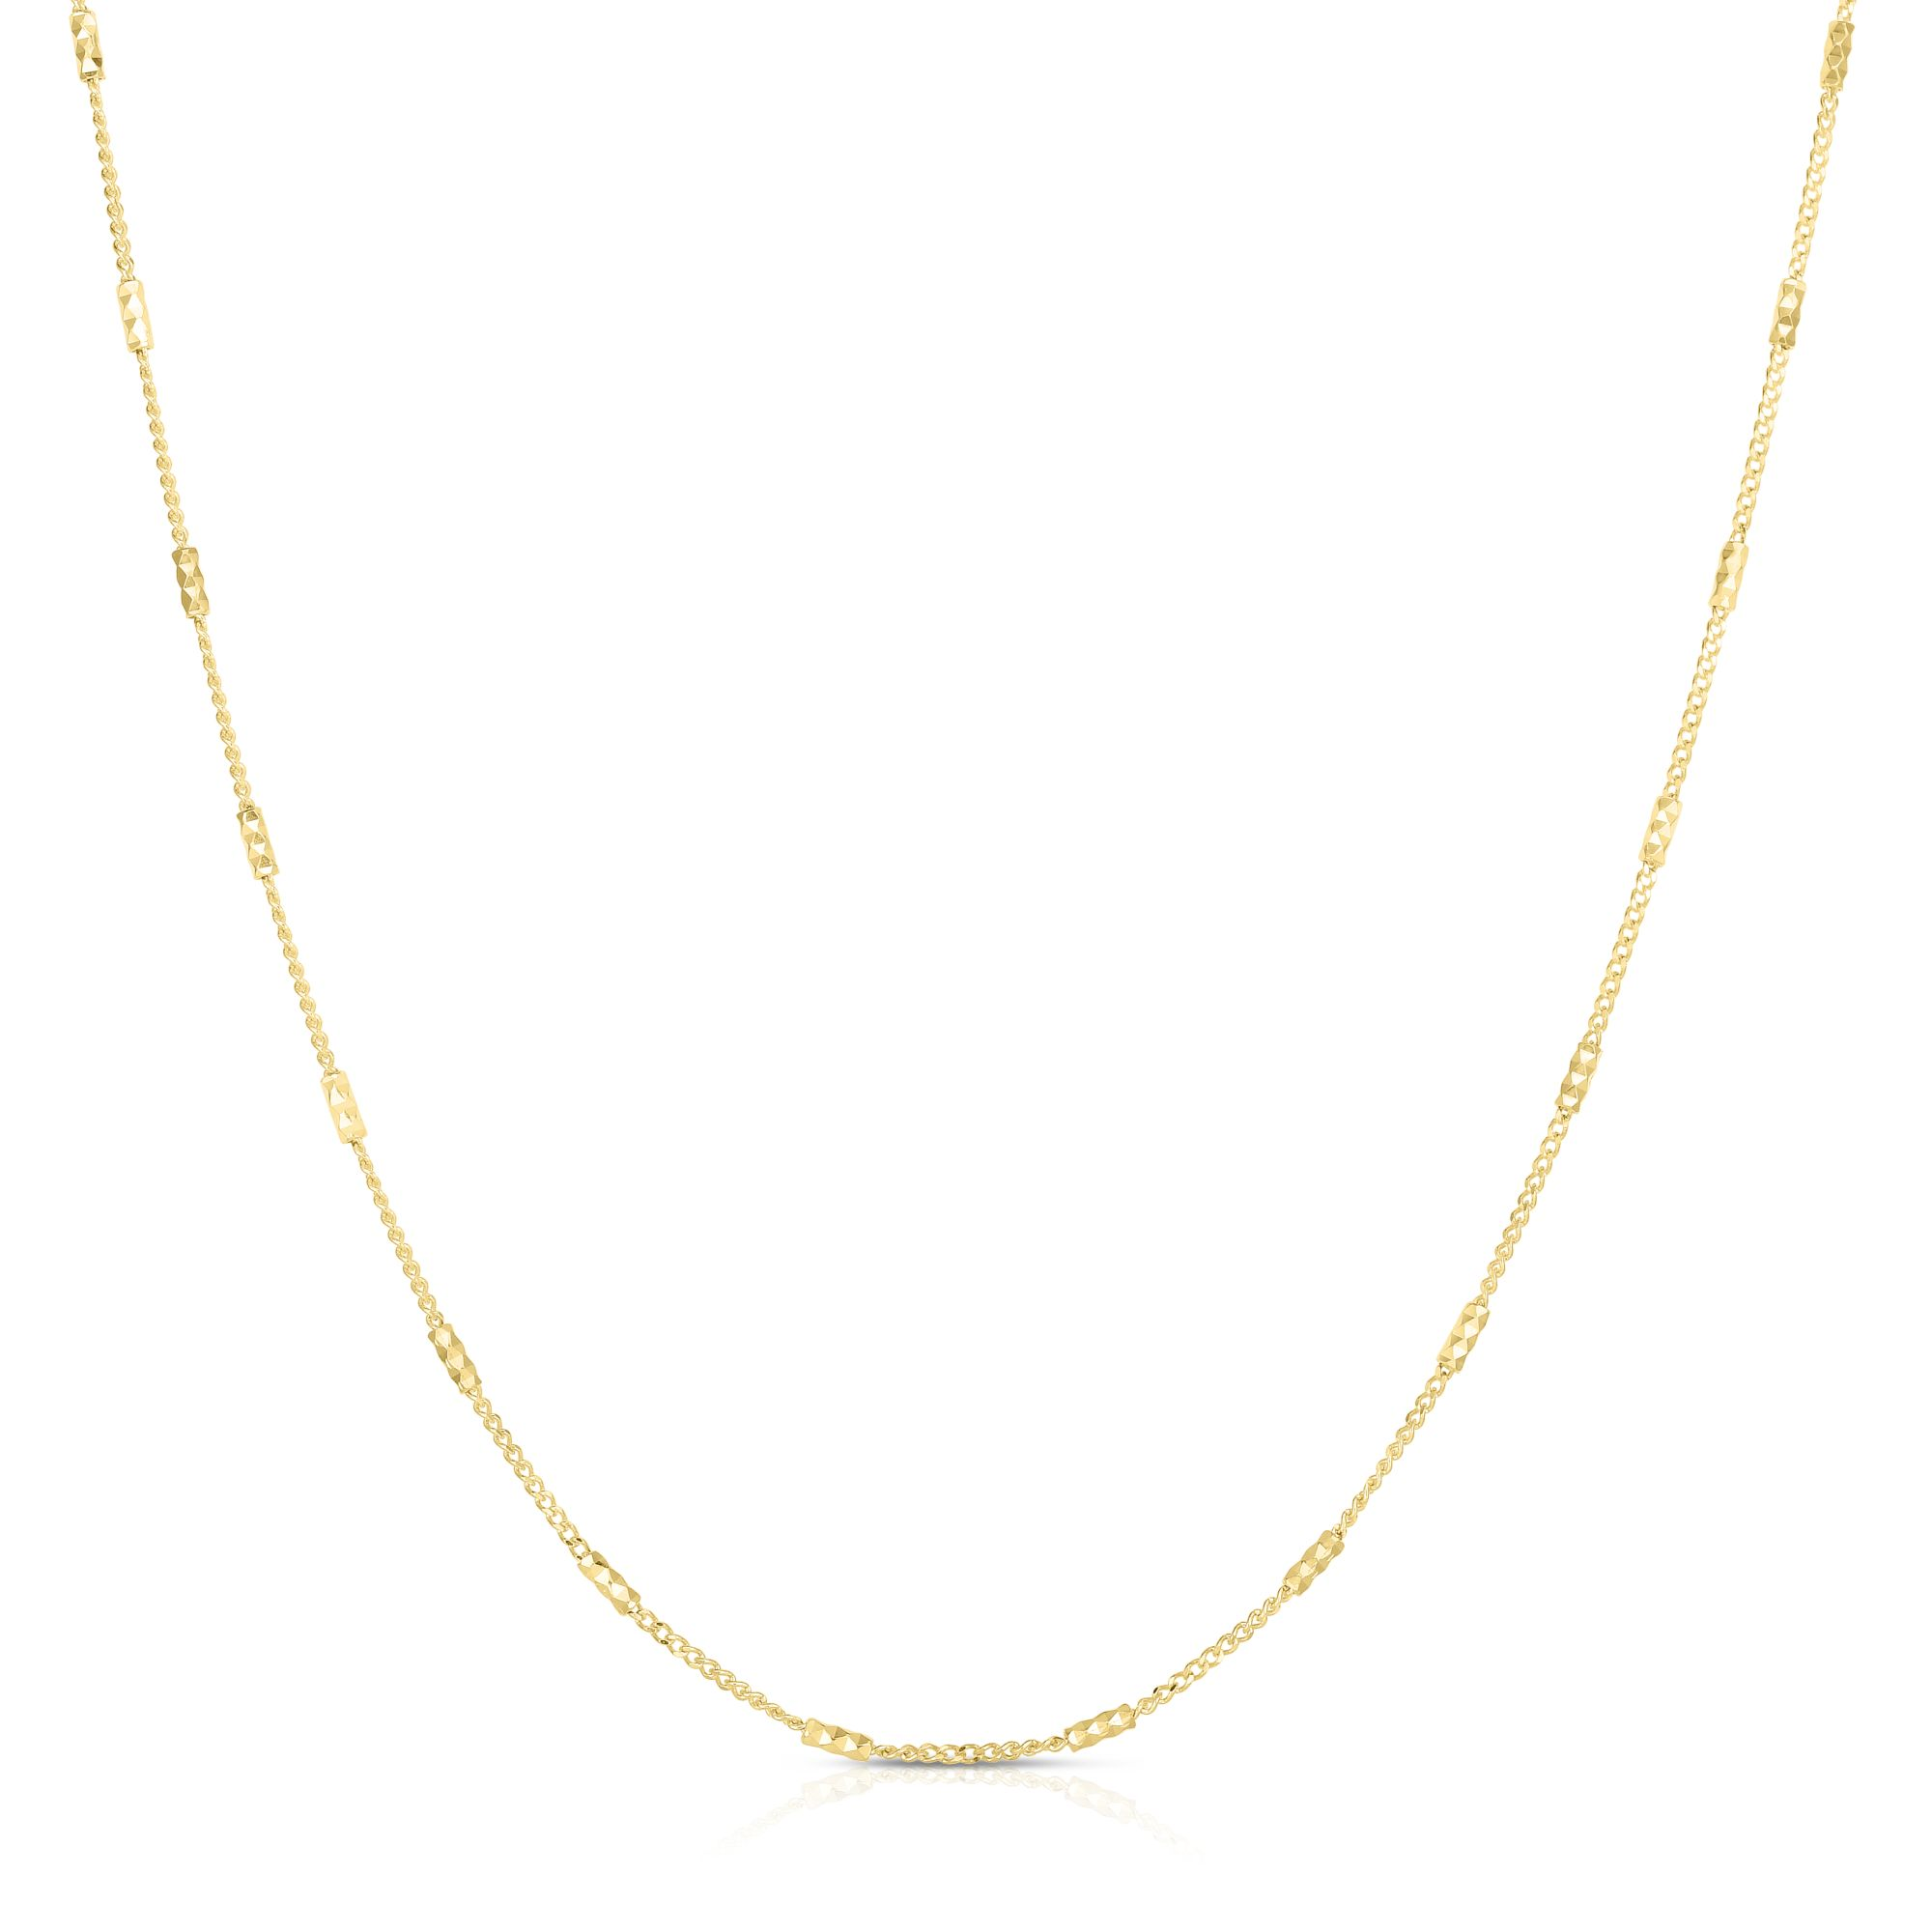 14kt Gold 18 inches Yellow Finish 1.2mm Shiny+Diamond Cut Fancy Bead+Bar Necklace with Spring Ring Clasp